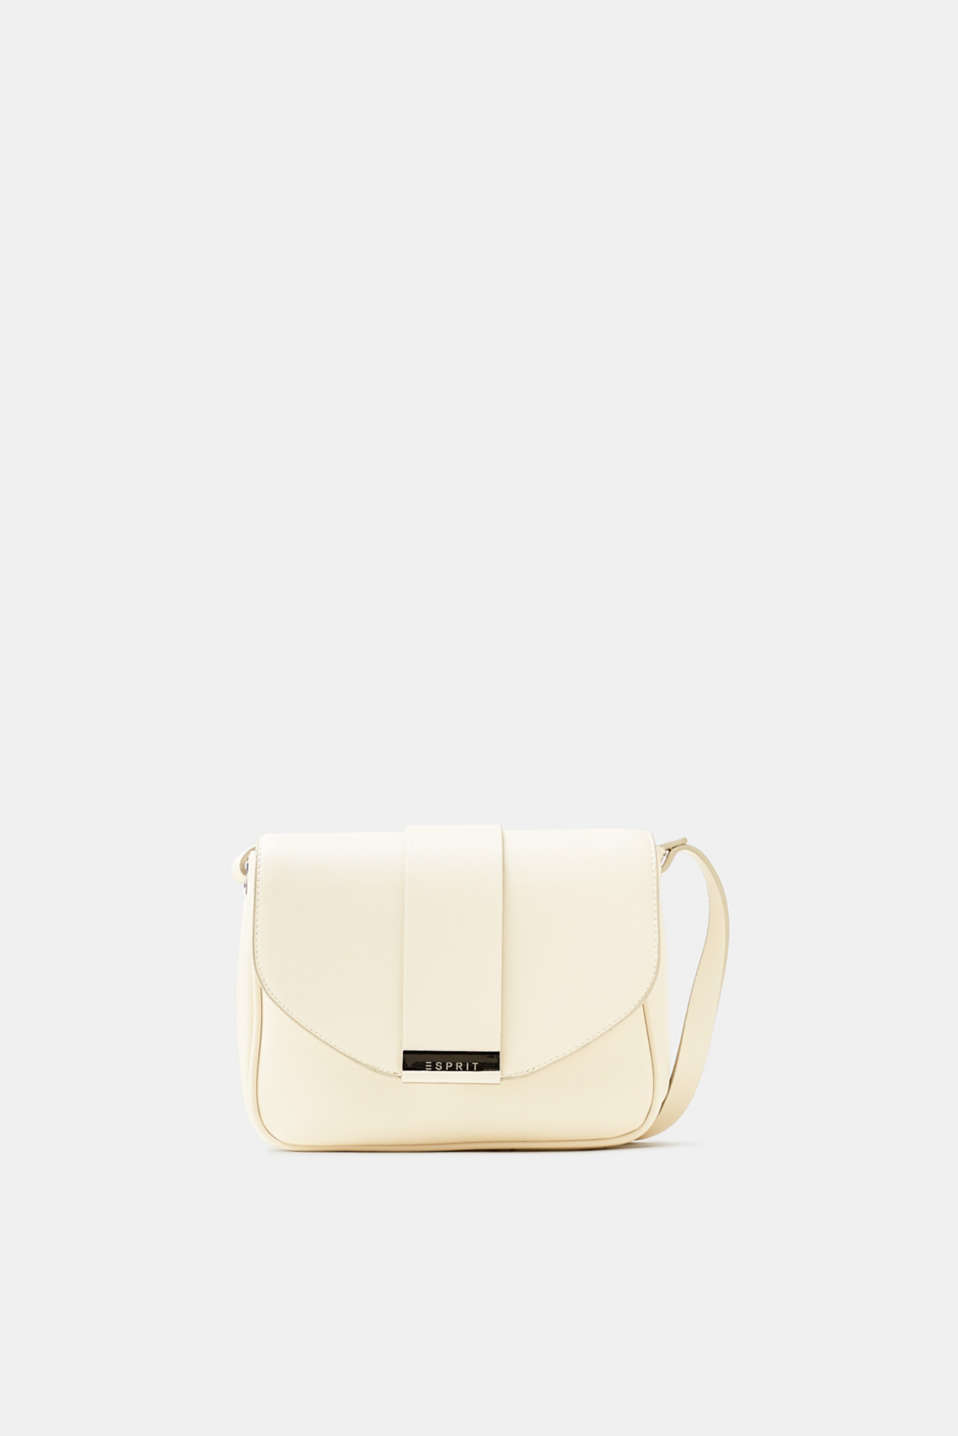 Esprit - Shoulder bag in matte faux leather